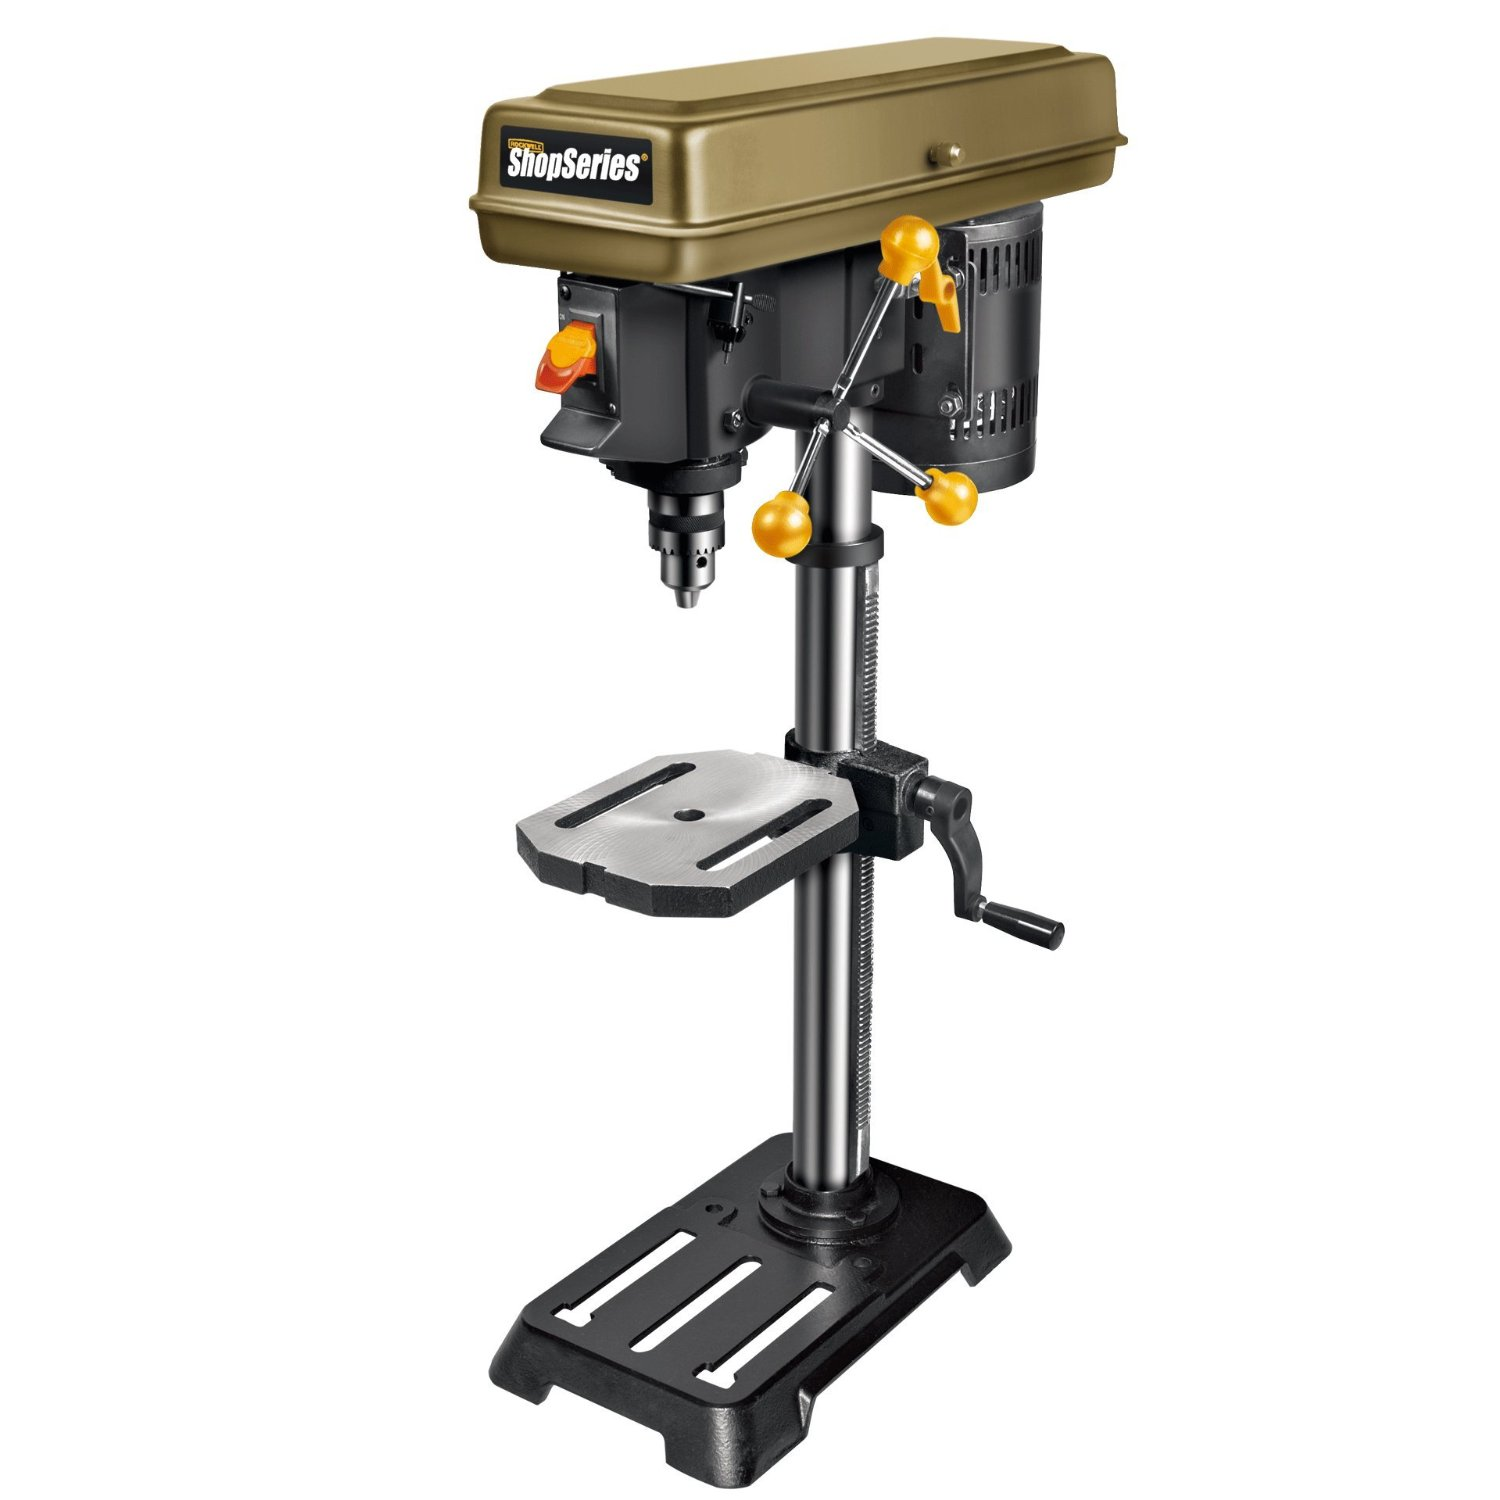 Top 10 Benchtop Drill Press Tools — Best Reviews in 2020